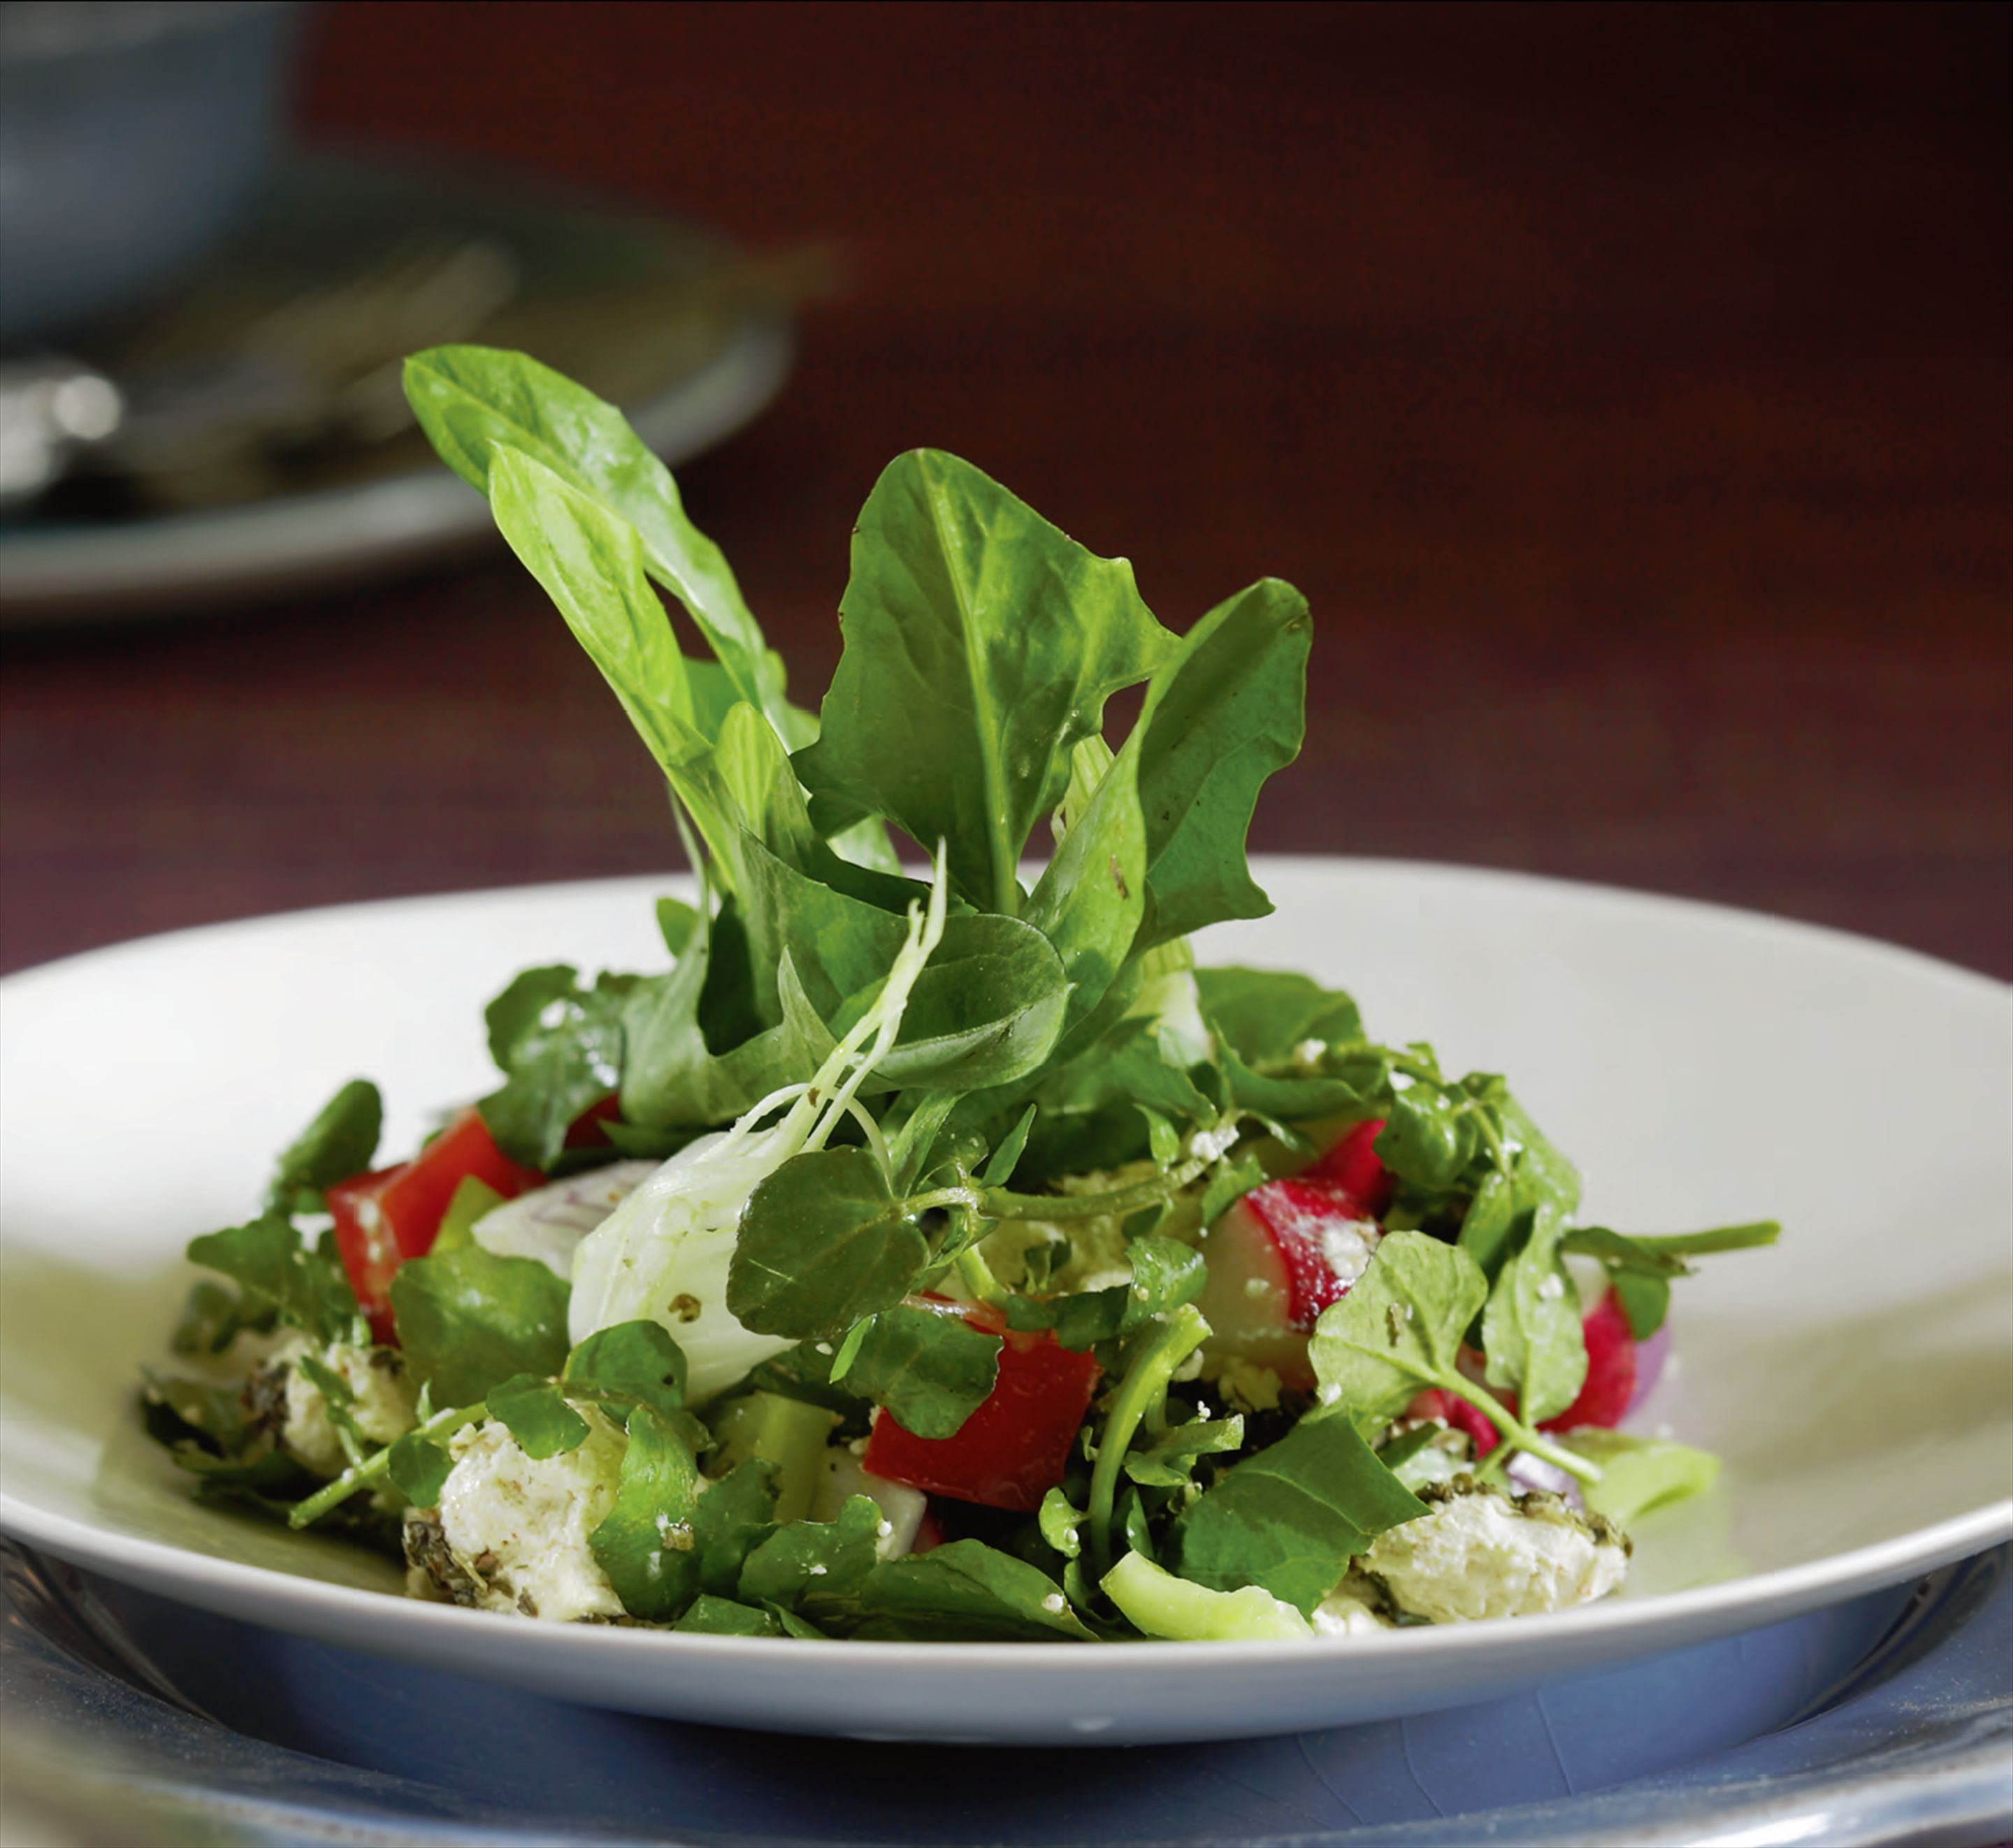 Soft herb salad with goat's cheese, crisp bread, sumac and pine nuts